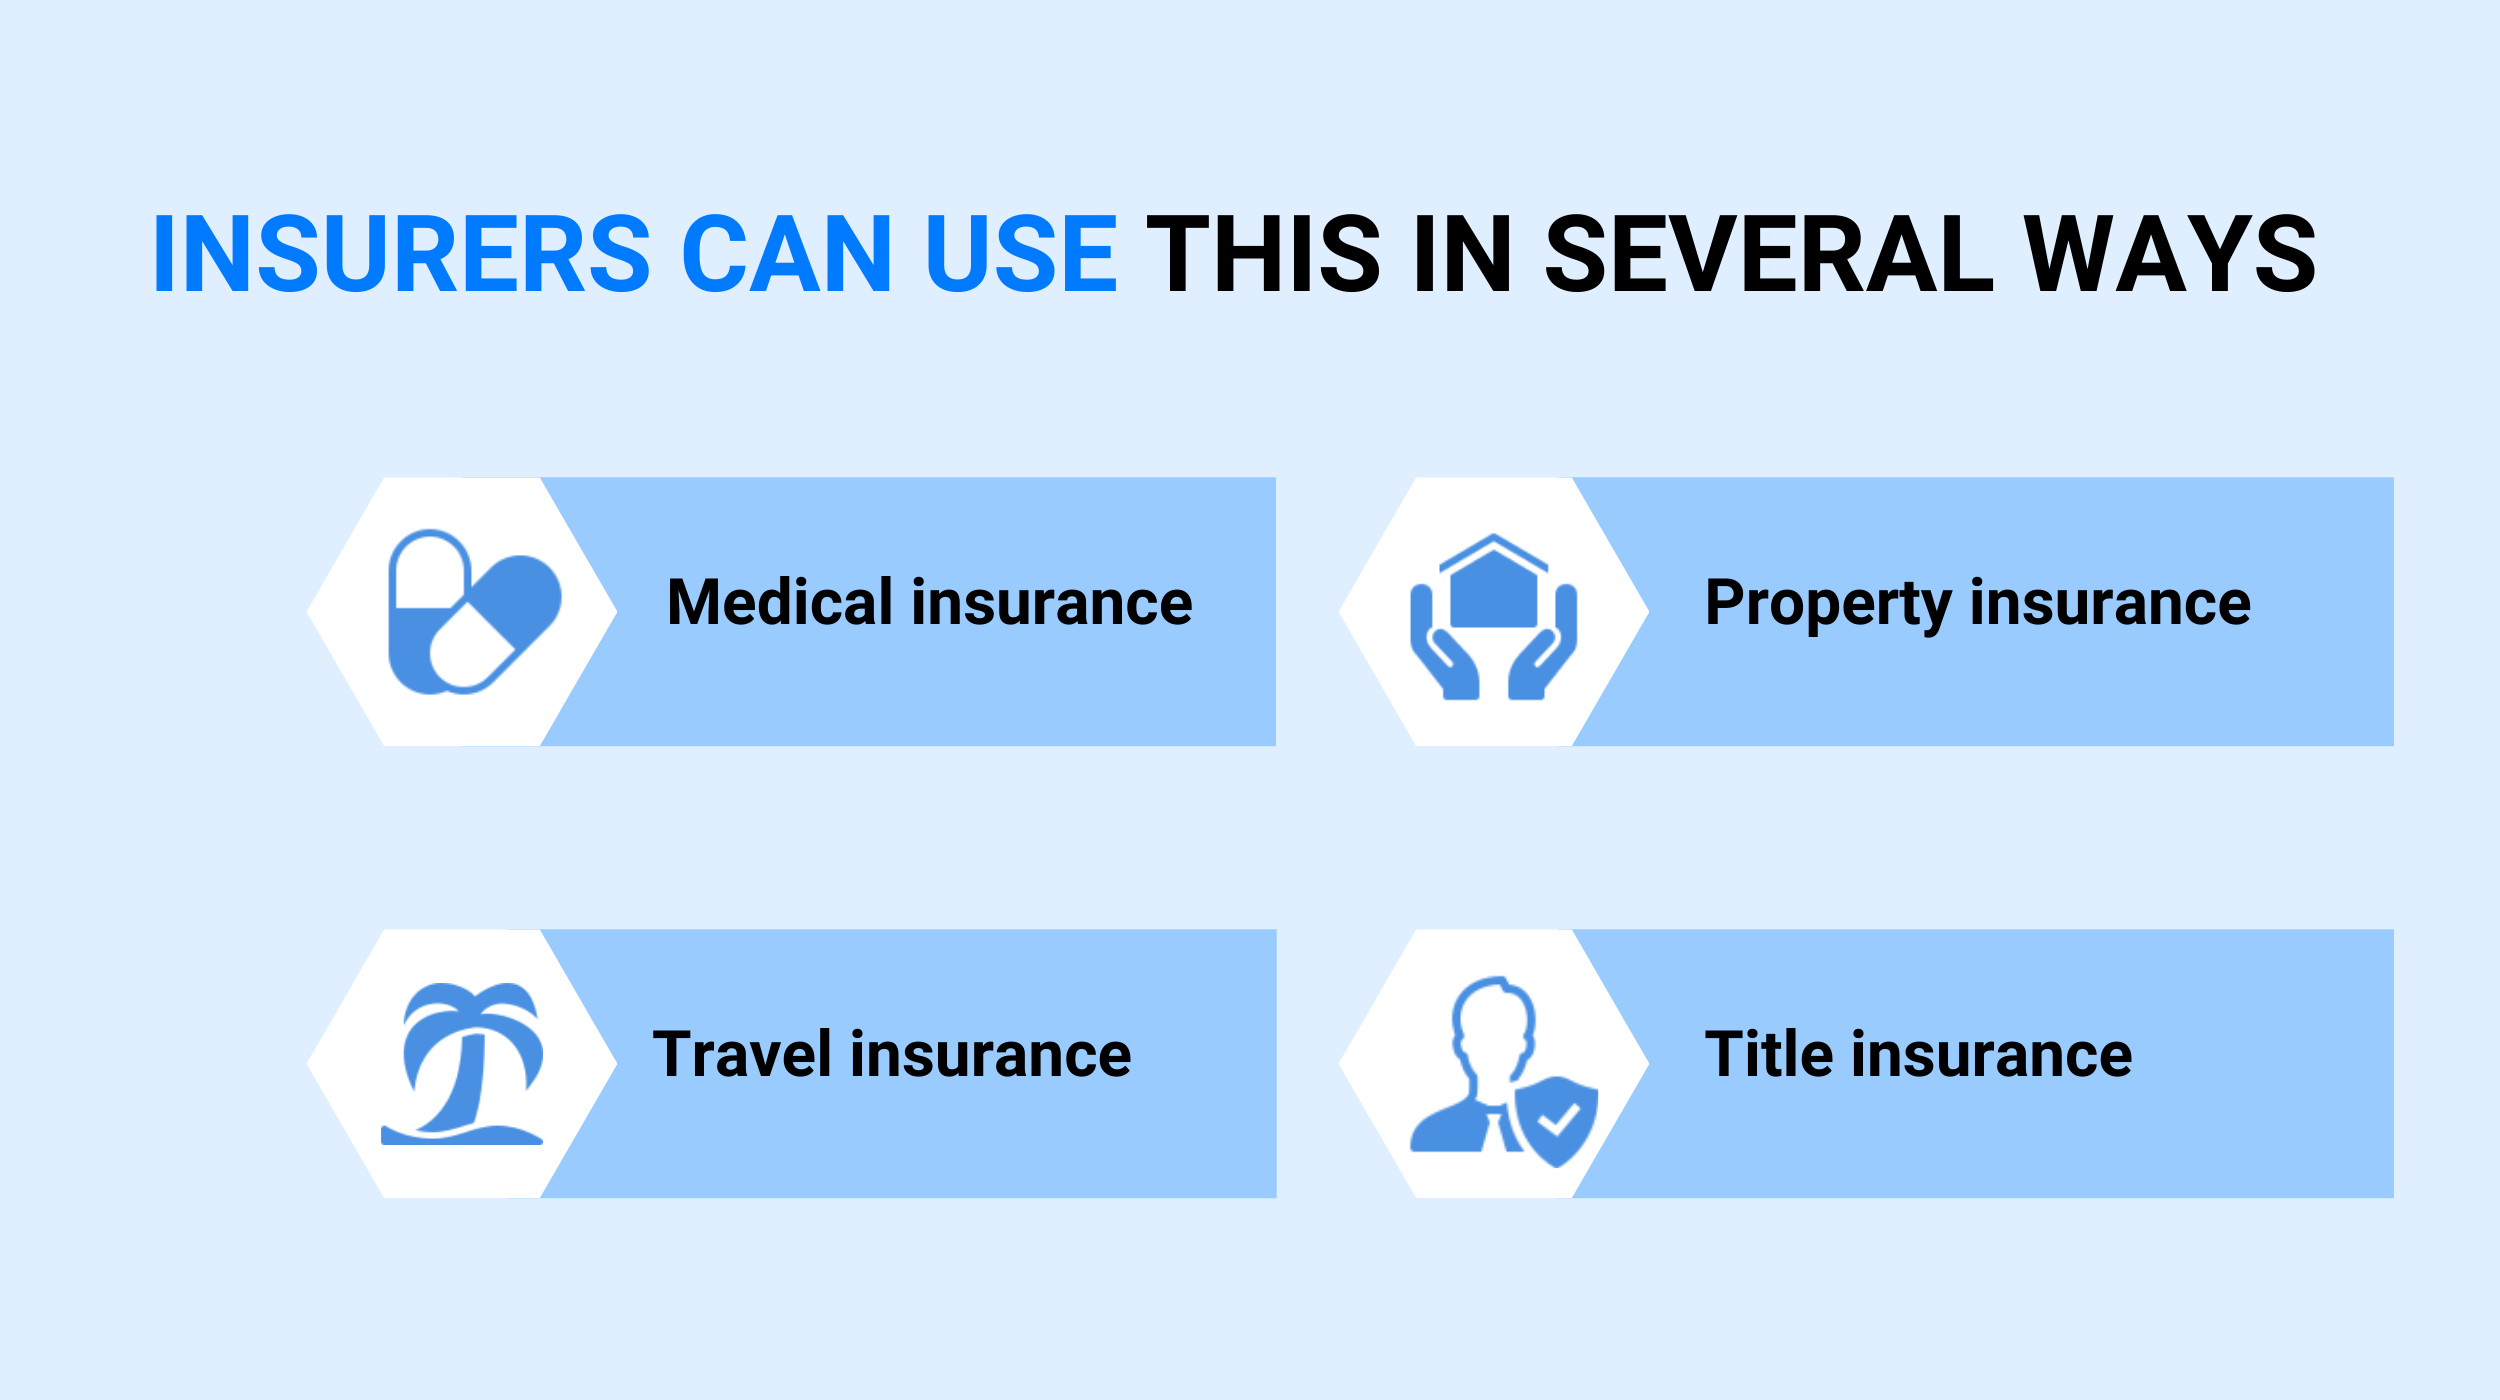 Insurers can use this in several ways